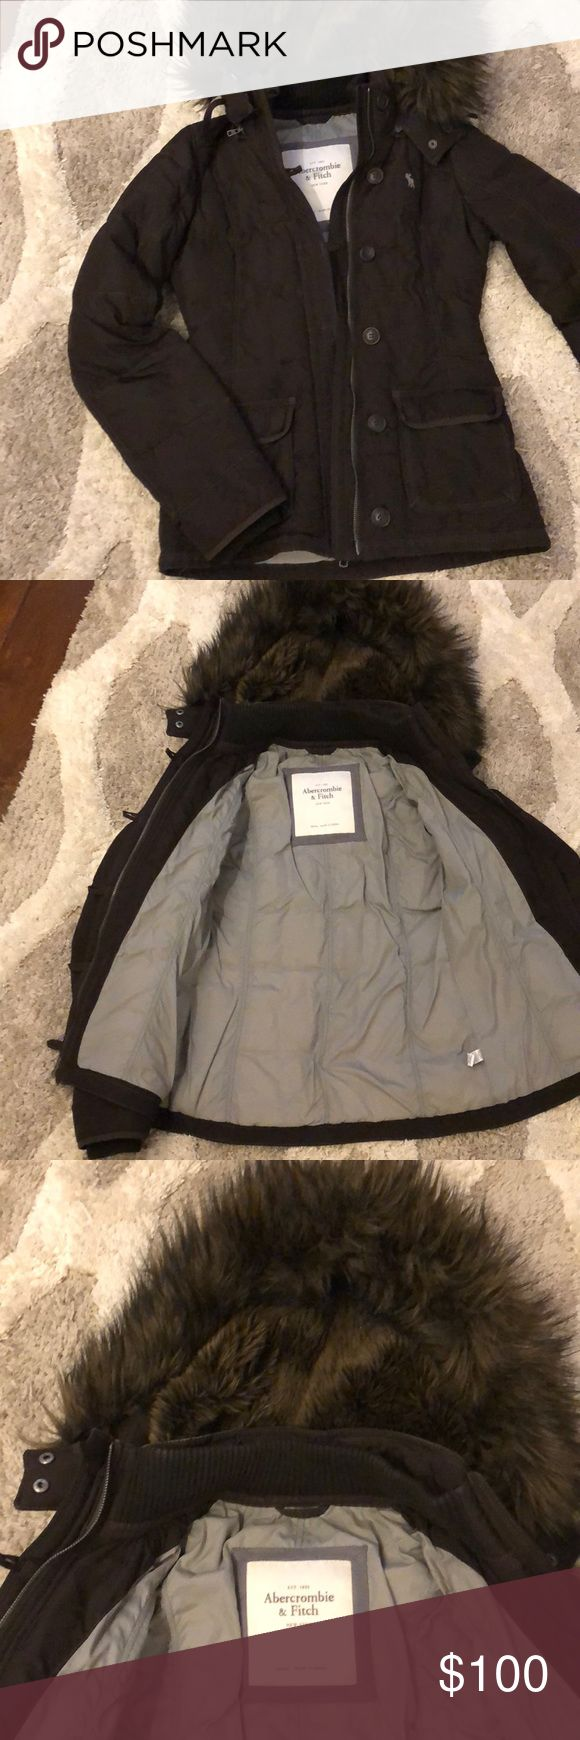 Abercrombie and Fitch coat Brown Abercrombie and Fitch puffer coat. Size small with a faux fur lined detachable hood. It's gray on the inside. Looks perfect except a couple of loose buttons. Super cute! Abercrombie & Fitch Jackets & Coats Puffers